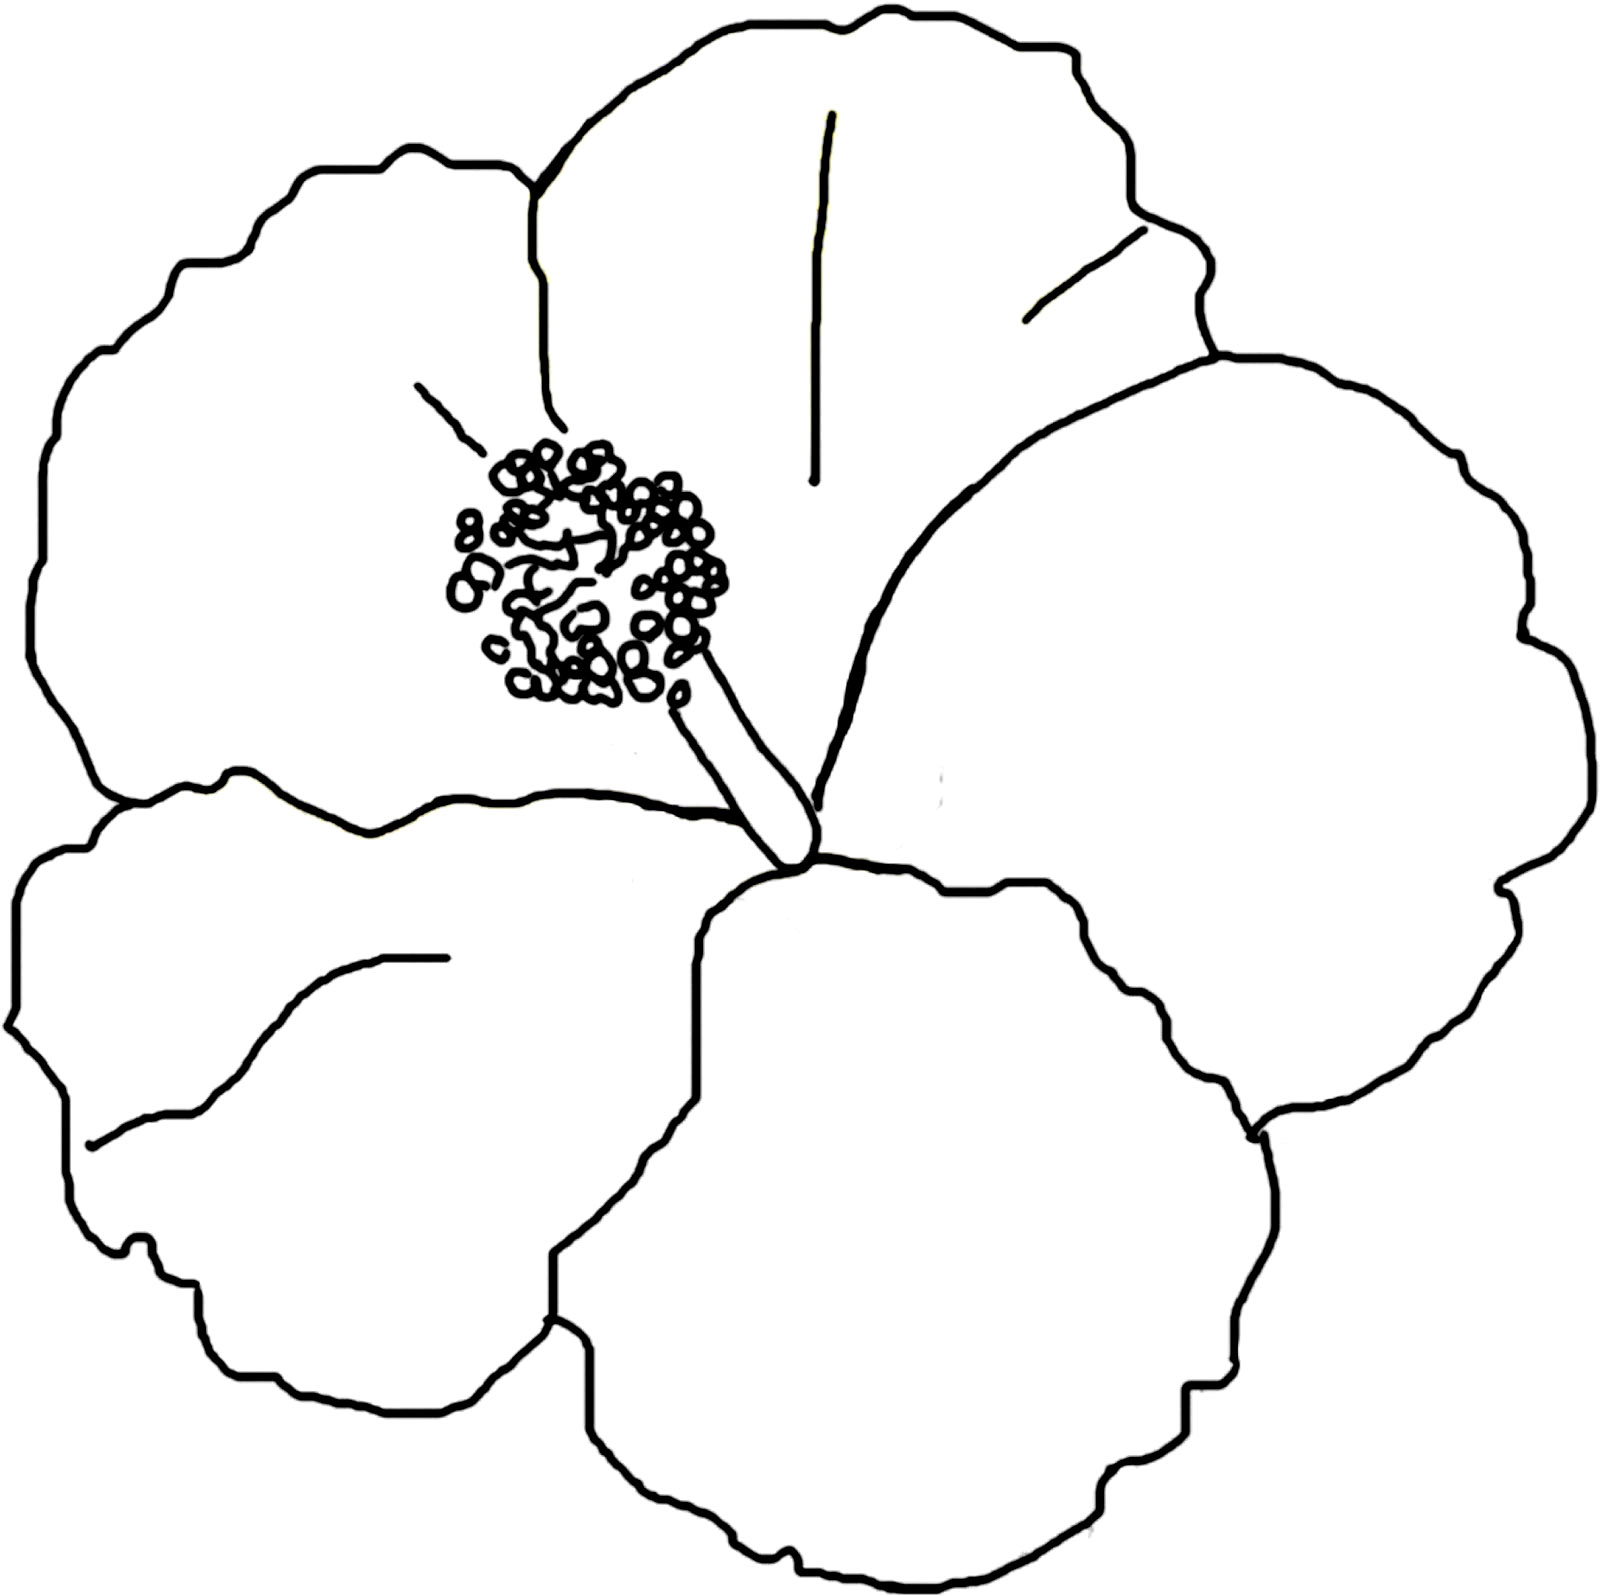 colouring pages hibiscus flower free printable hibiscus coloring pages for kids hibiscus pages colouring flower